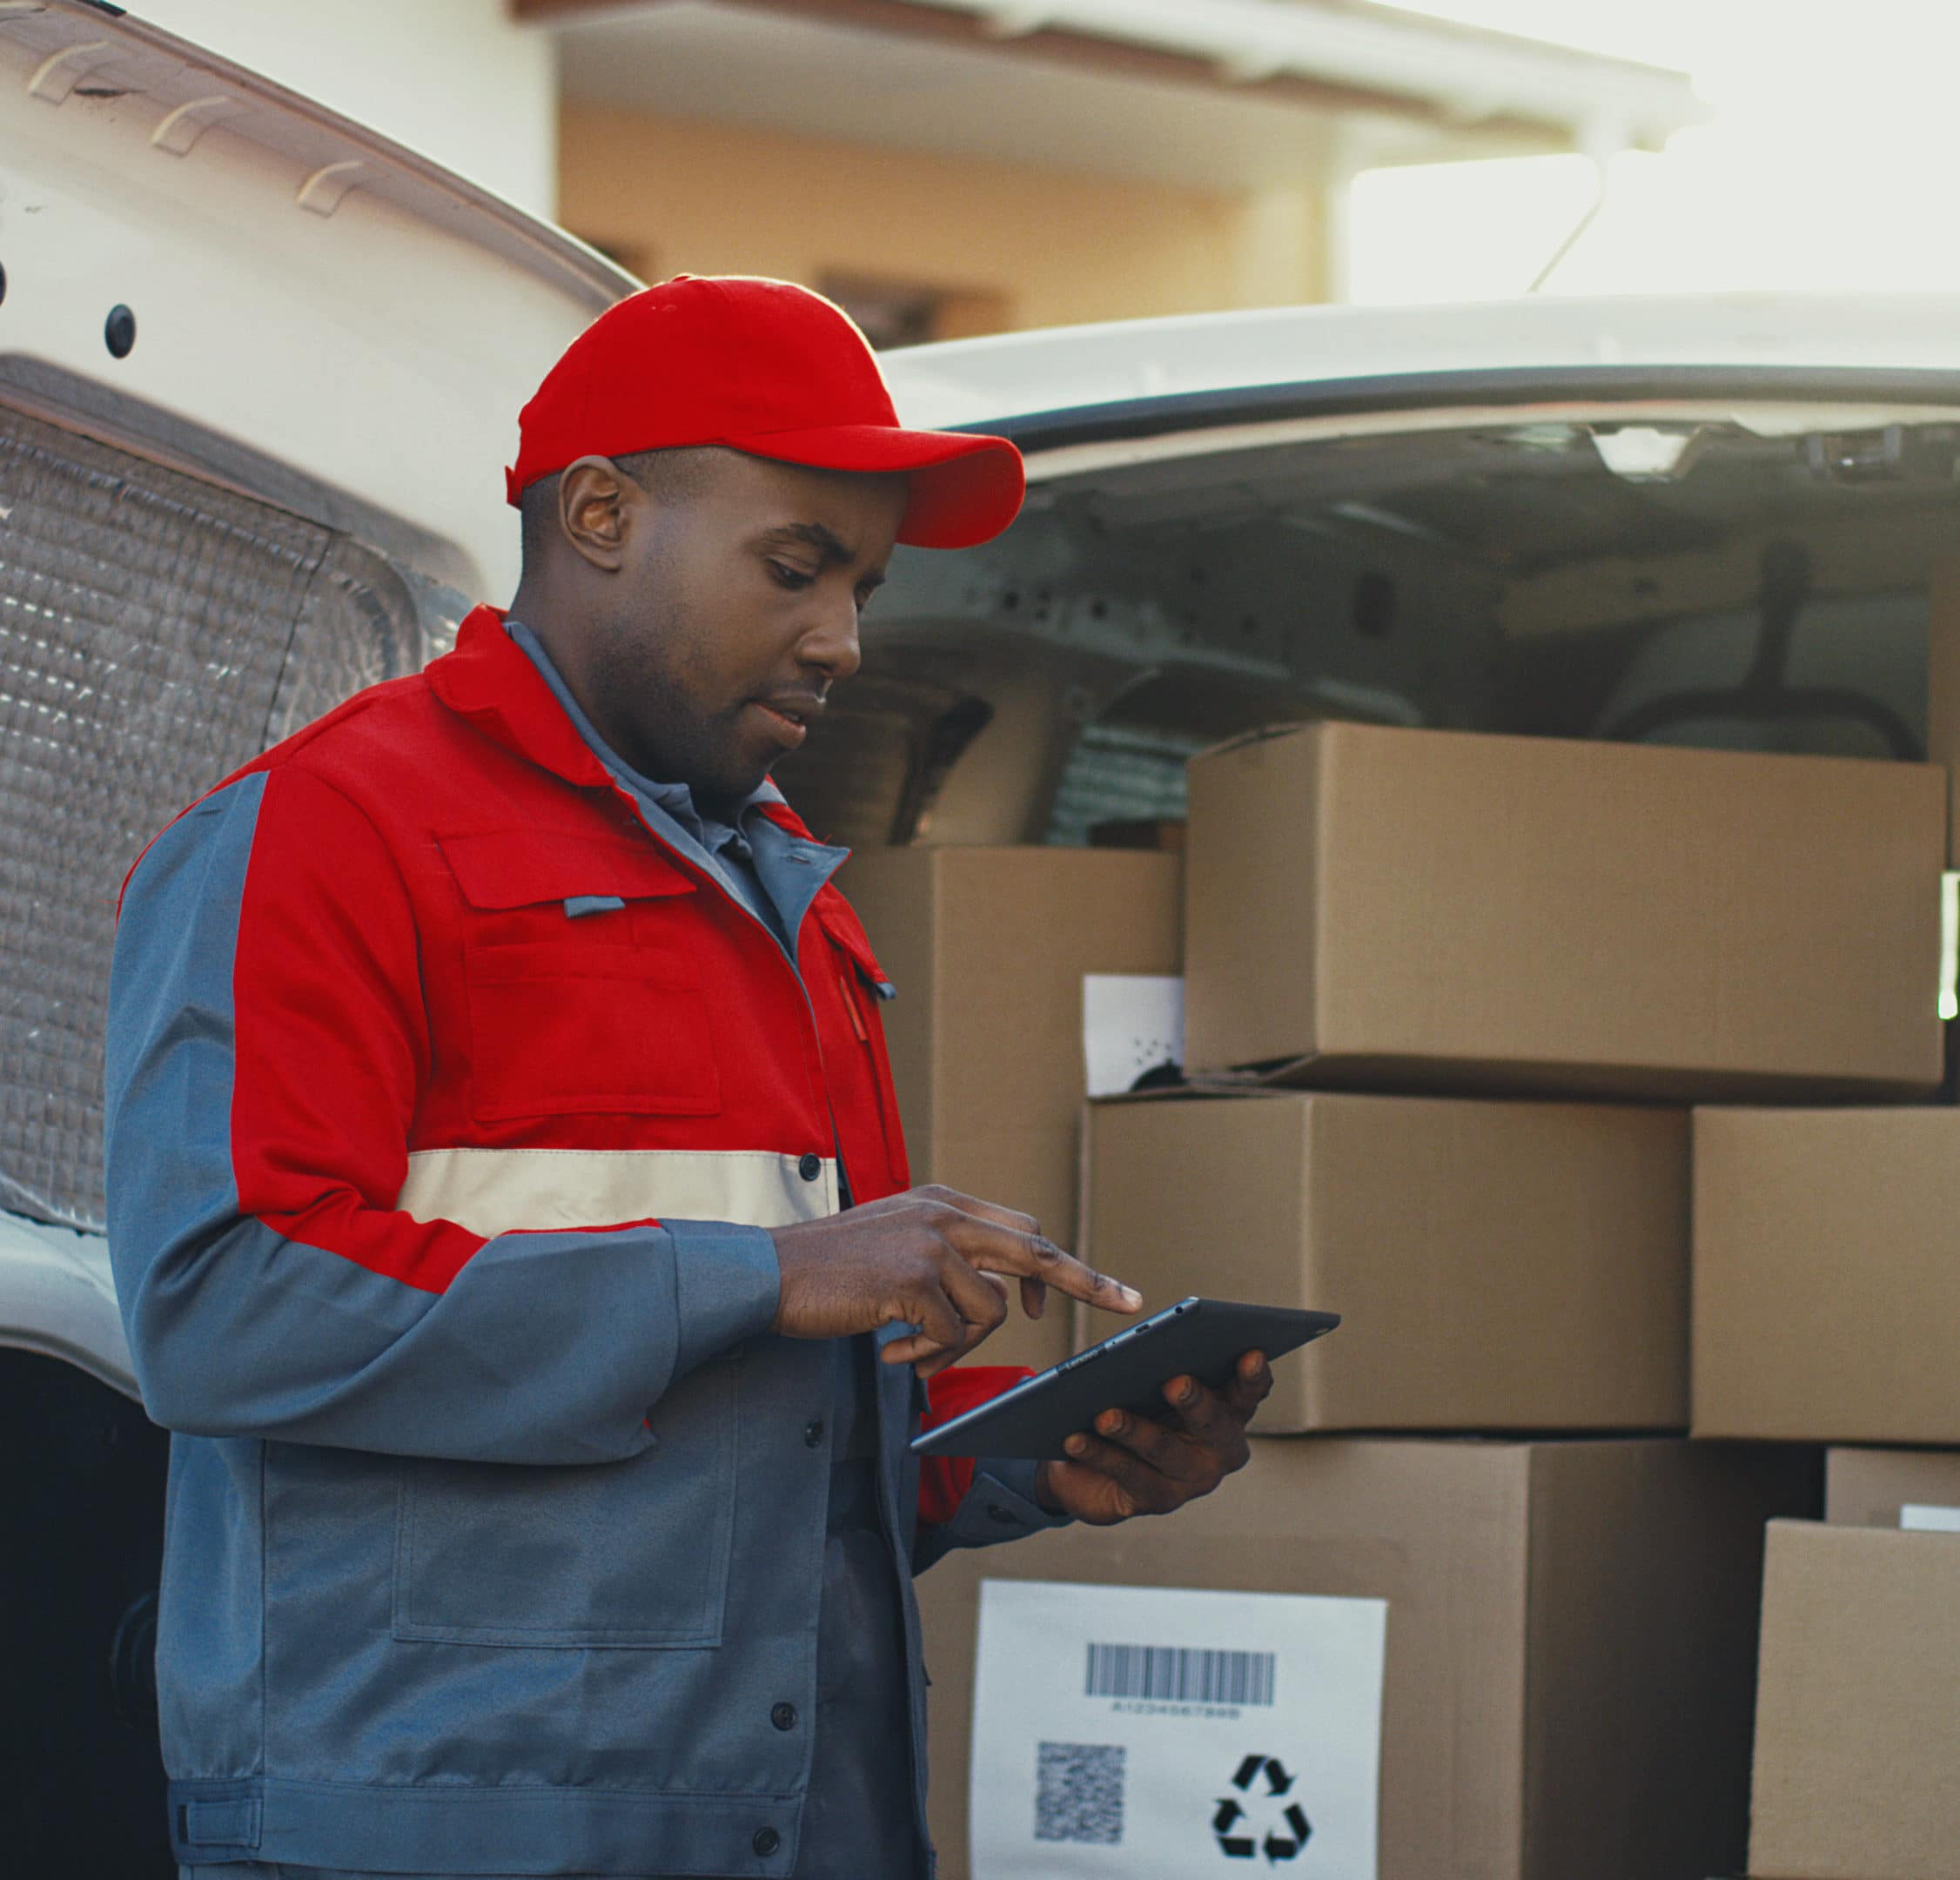 African American young mailman in red costume and cap counting the mail boxes in a van with tablet device in hands. Outdoors.